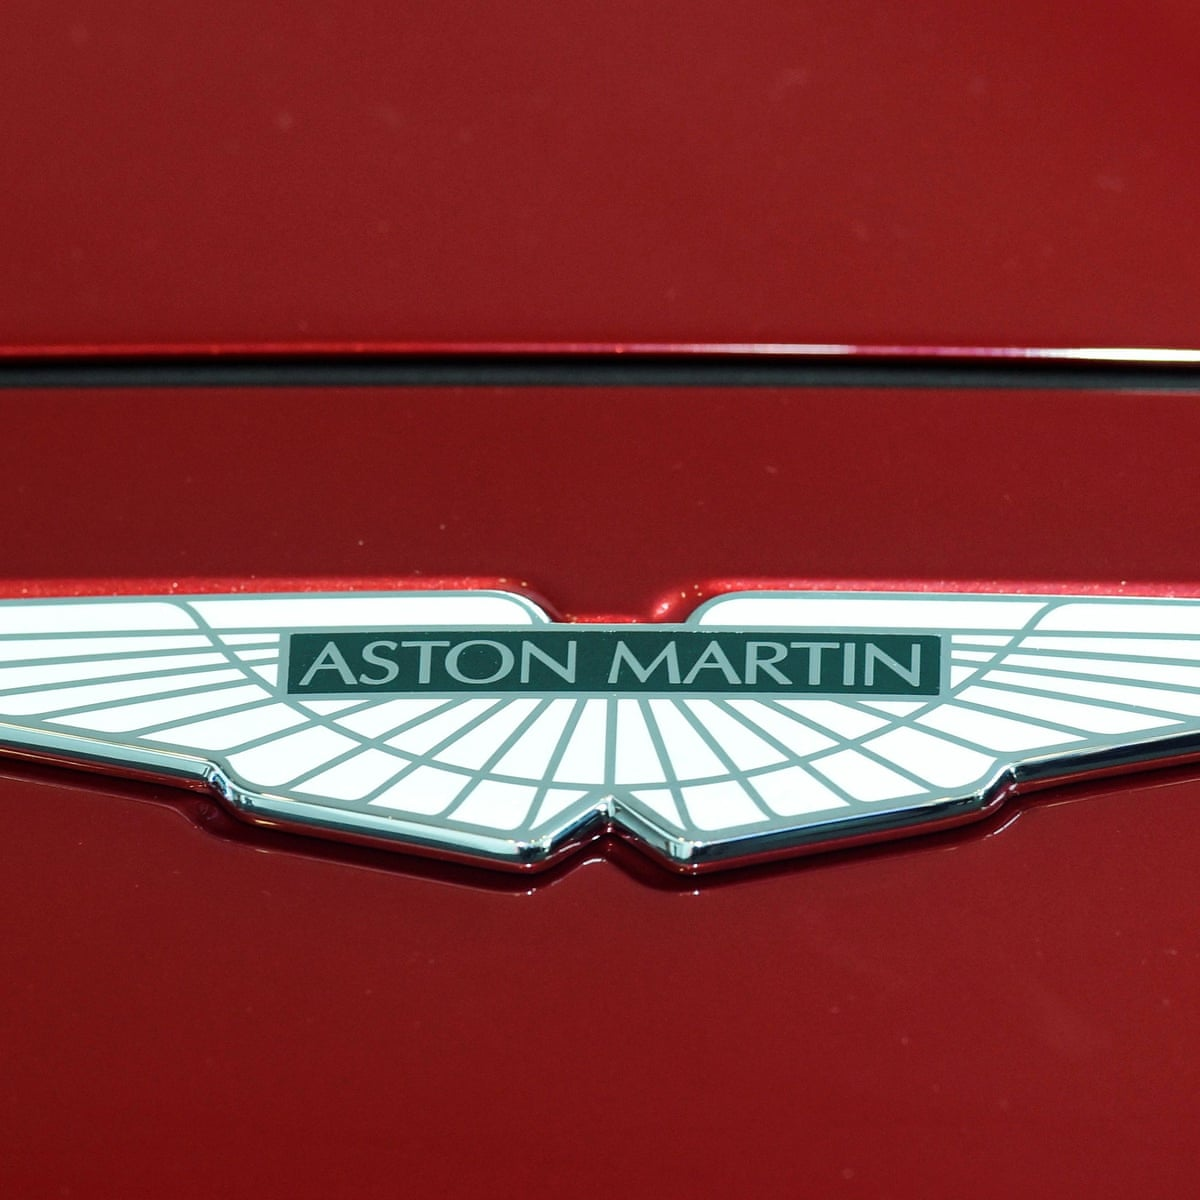 Aston Martin Makes 119m Loss In First Quarter Of 2020 Aston Martin The Guardian